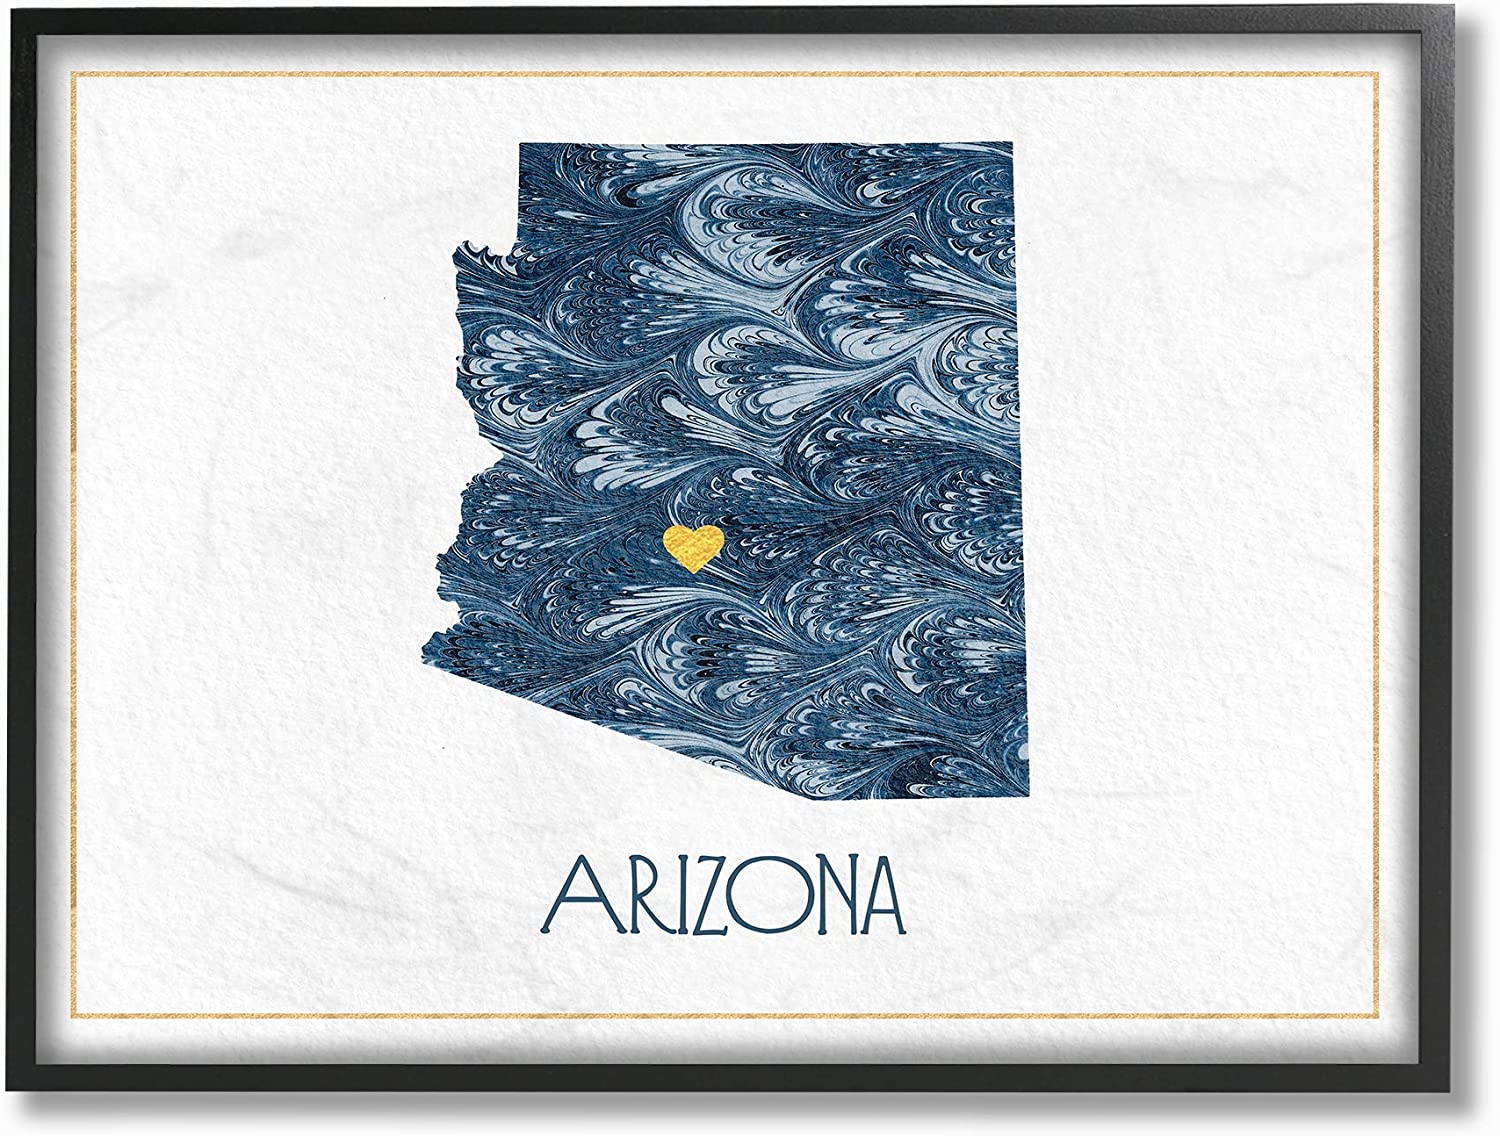 The Stupell Home Decor Arizona Minimal bluee Marbled Paper Silhouette Framed Giclee Texturized Art, 11 X 14, Multicolor